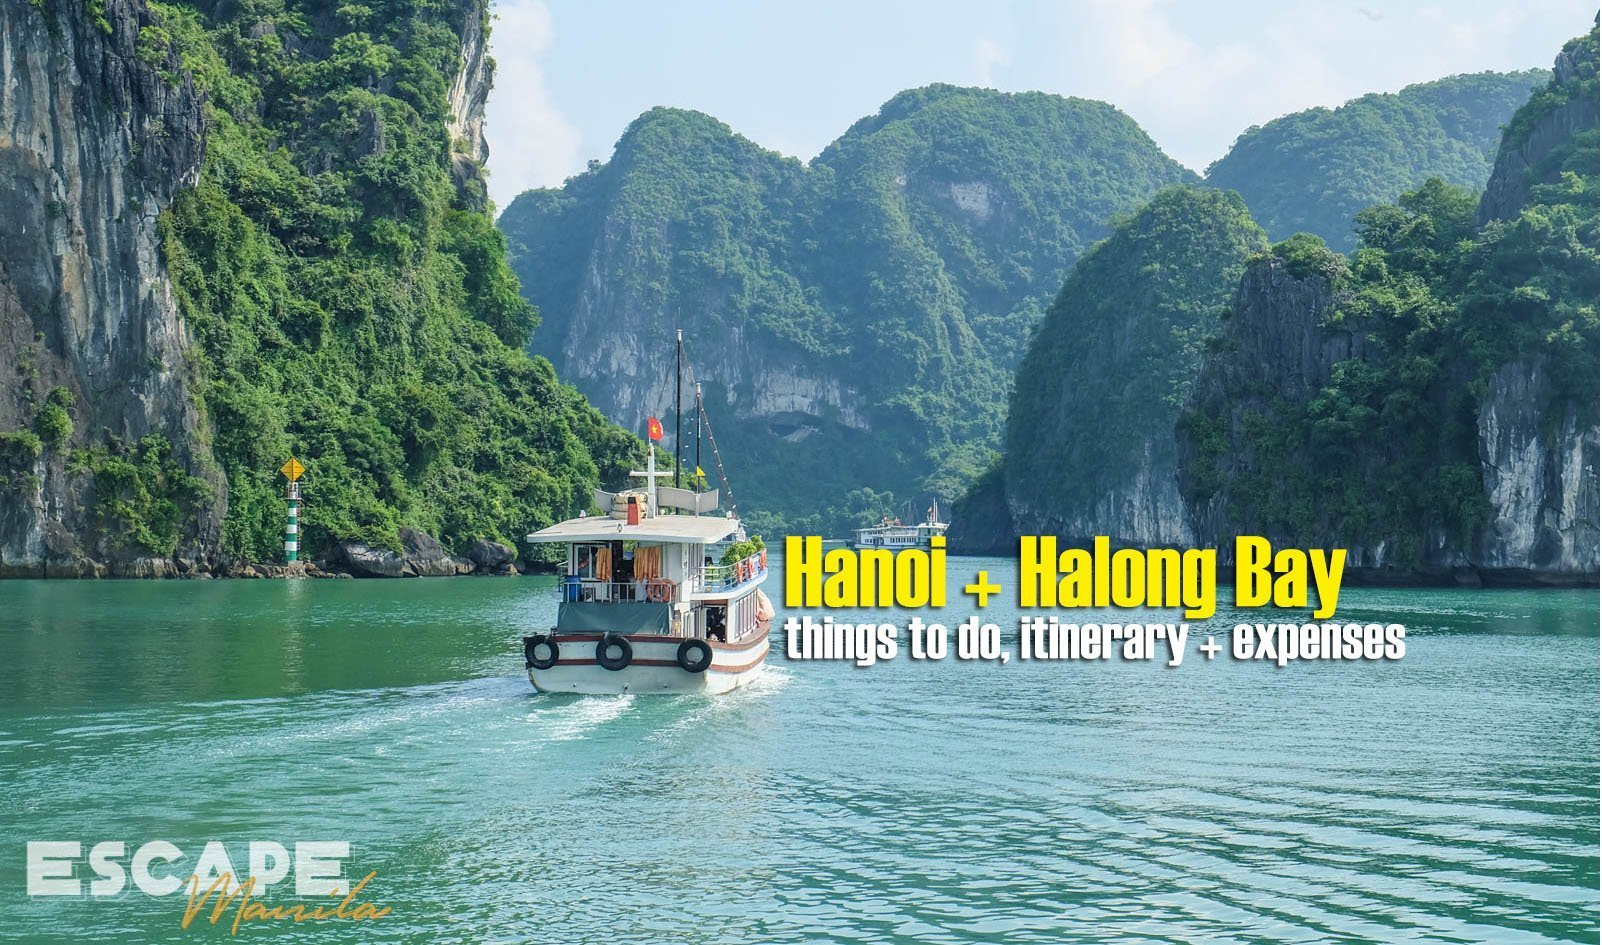 Hanoi + Ha Long Bay Travel Guide Blog: Things to Do, Itinerary & Expenses